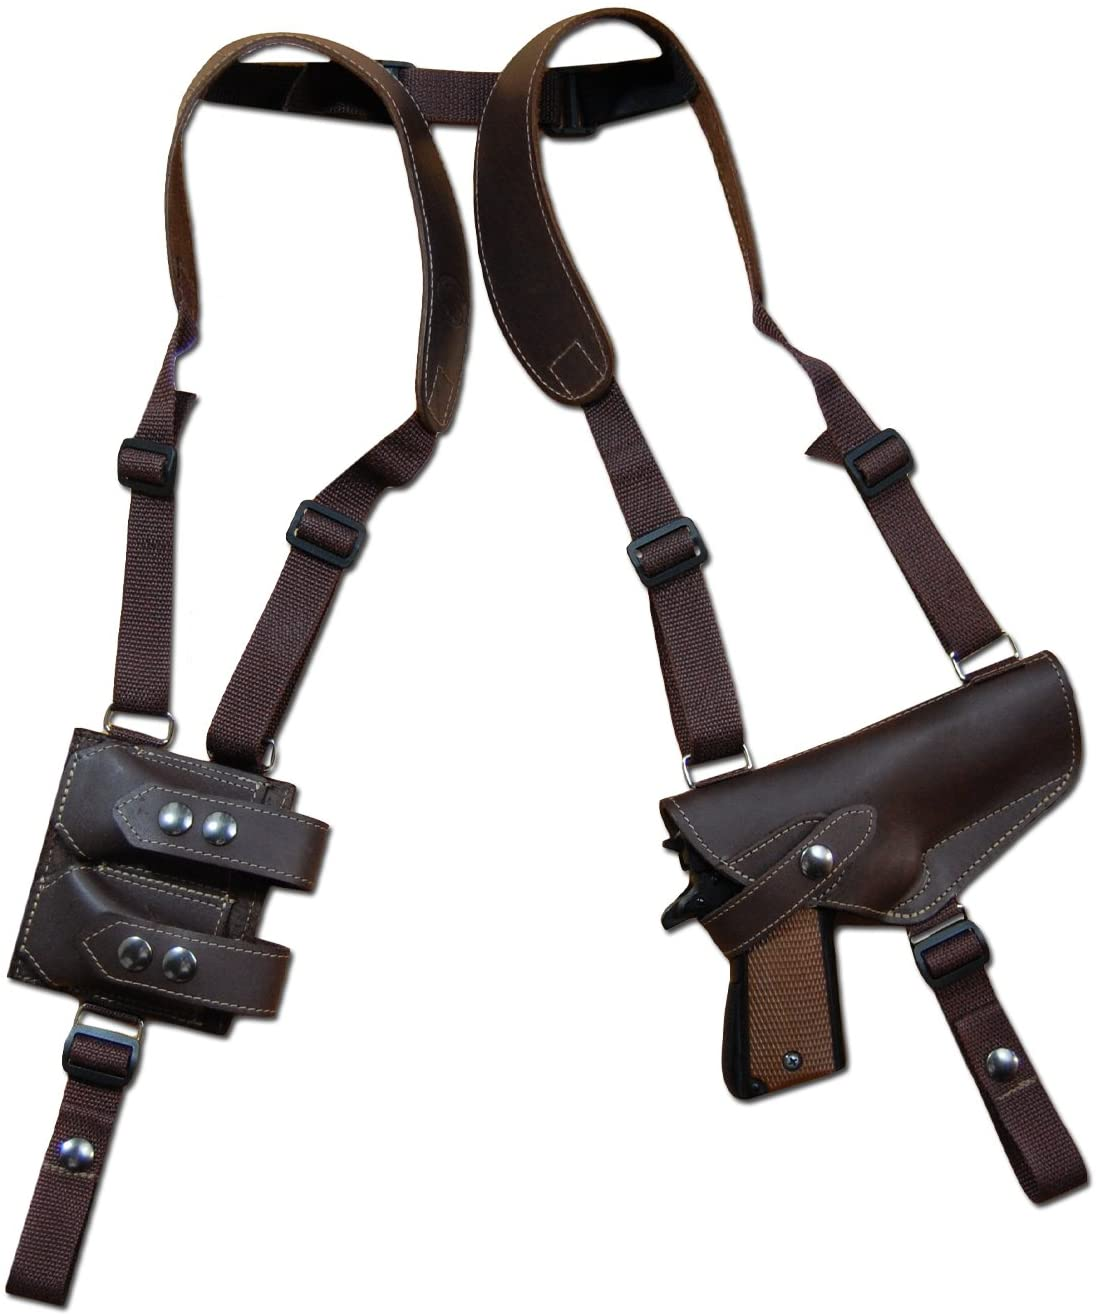 Barsony New Horizontal Brown Leather Shoulder Holster w/Dbl Mag Pouch for Full Size 9mm 40 45